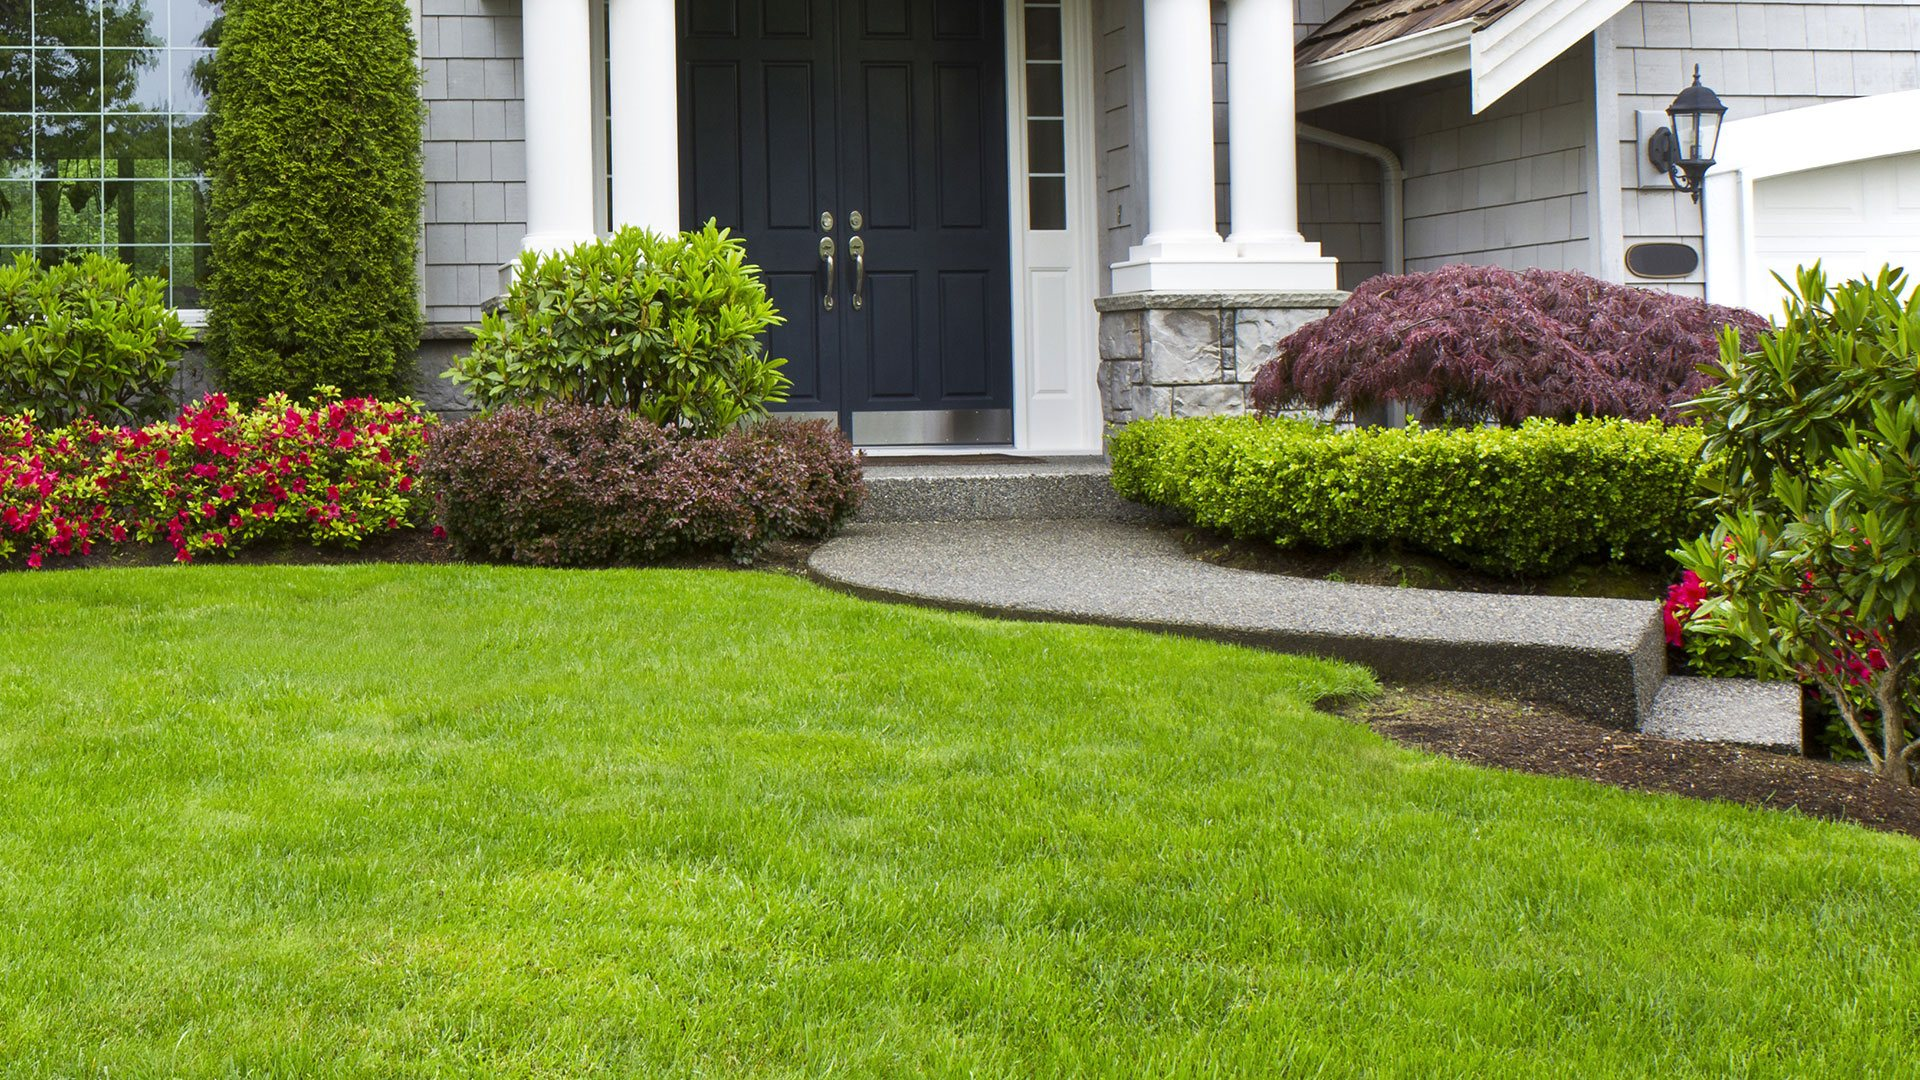 Home pittsburgh garden design lawn maintenance and for Landscape design services